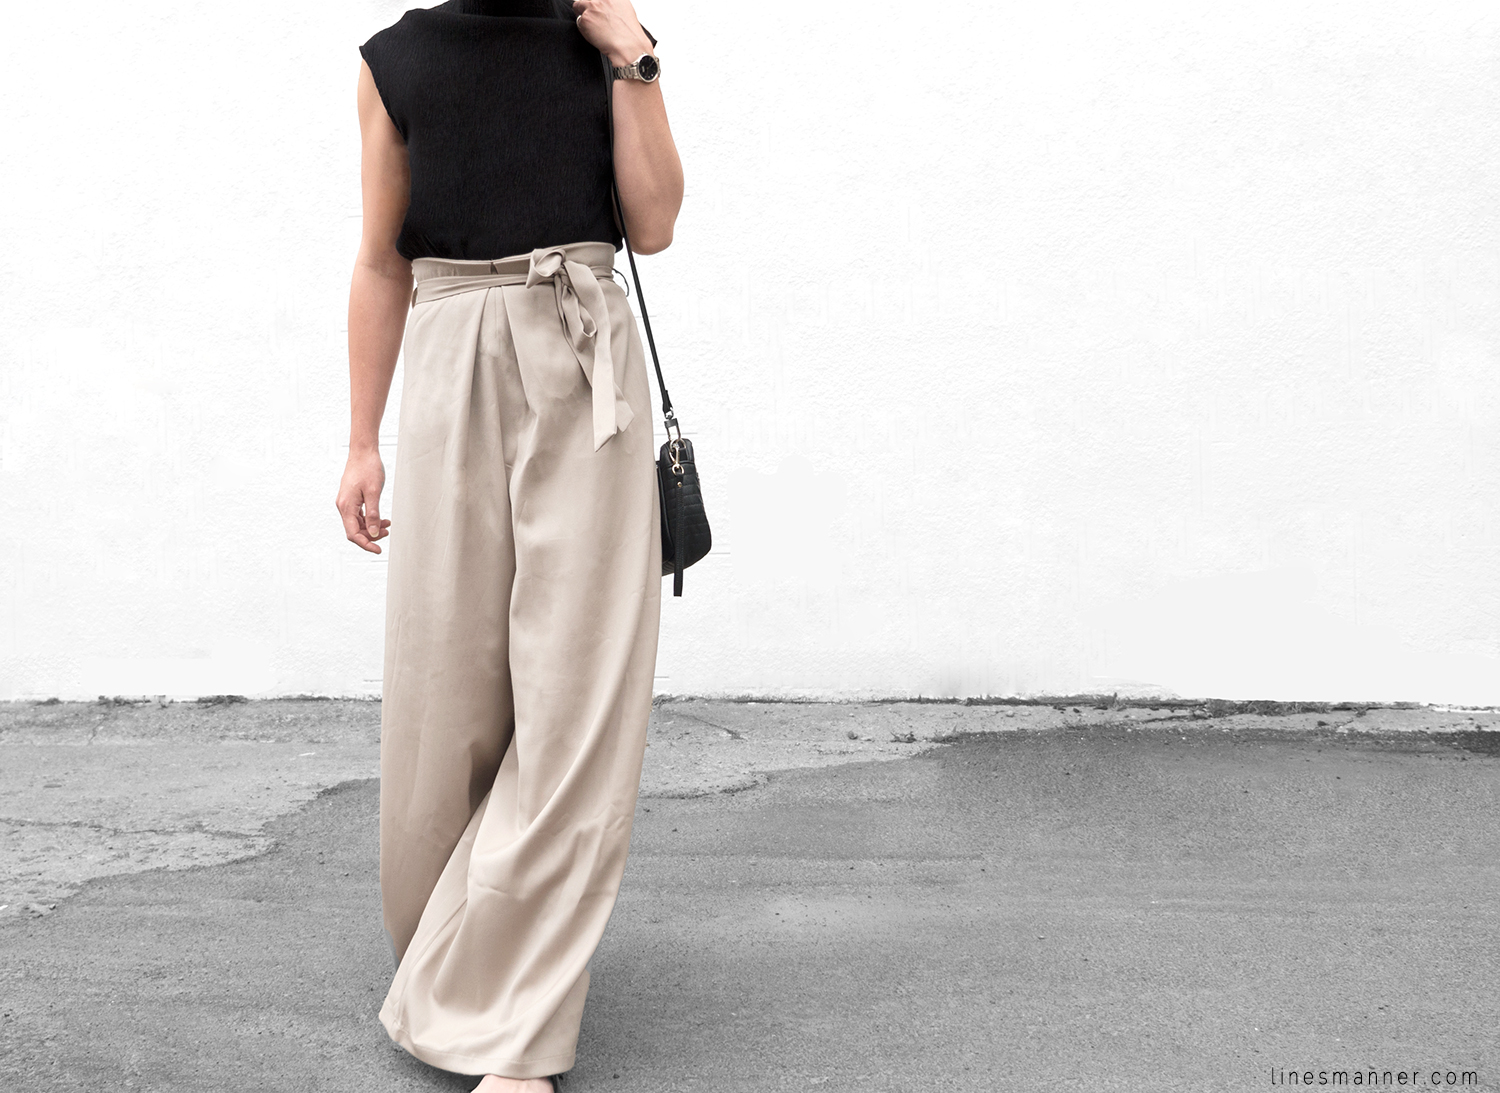 Lines-Manner-Neutrals-Quality-Lora_Gene-Wide_Leg_Pant-Modern-Sophistication-Tailored-Essentials-Details-Simplicity-Summer_vibes-Volume-Proportion-Flowy-3